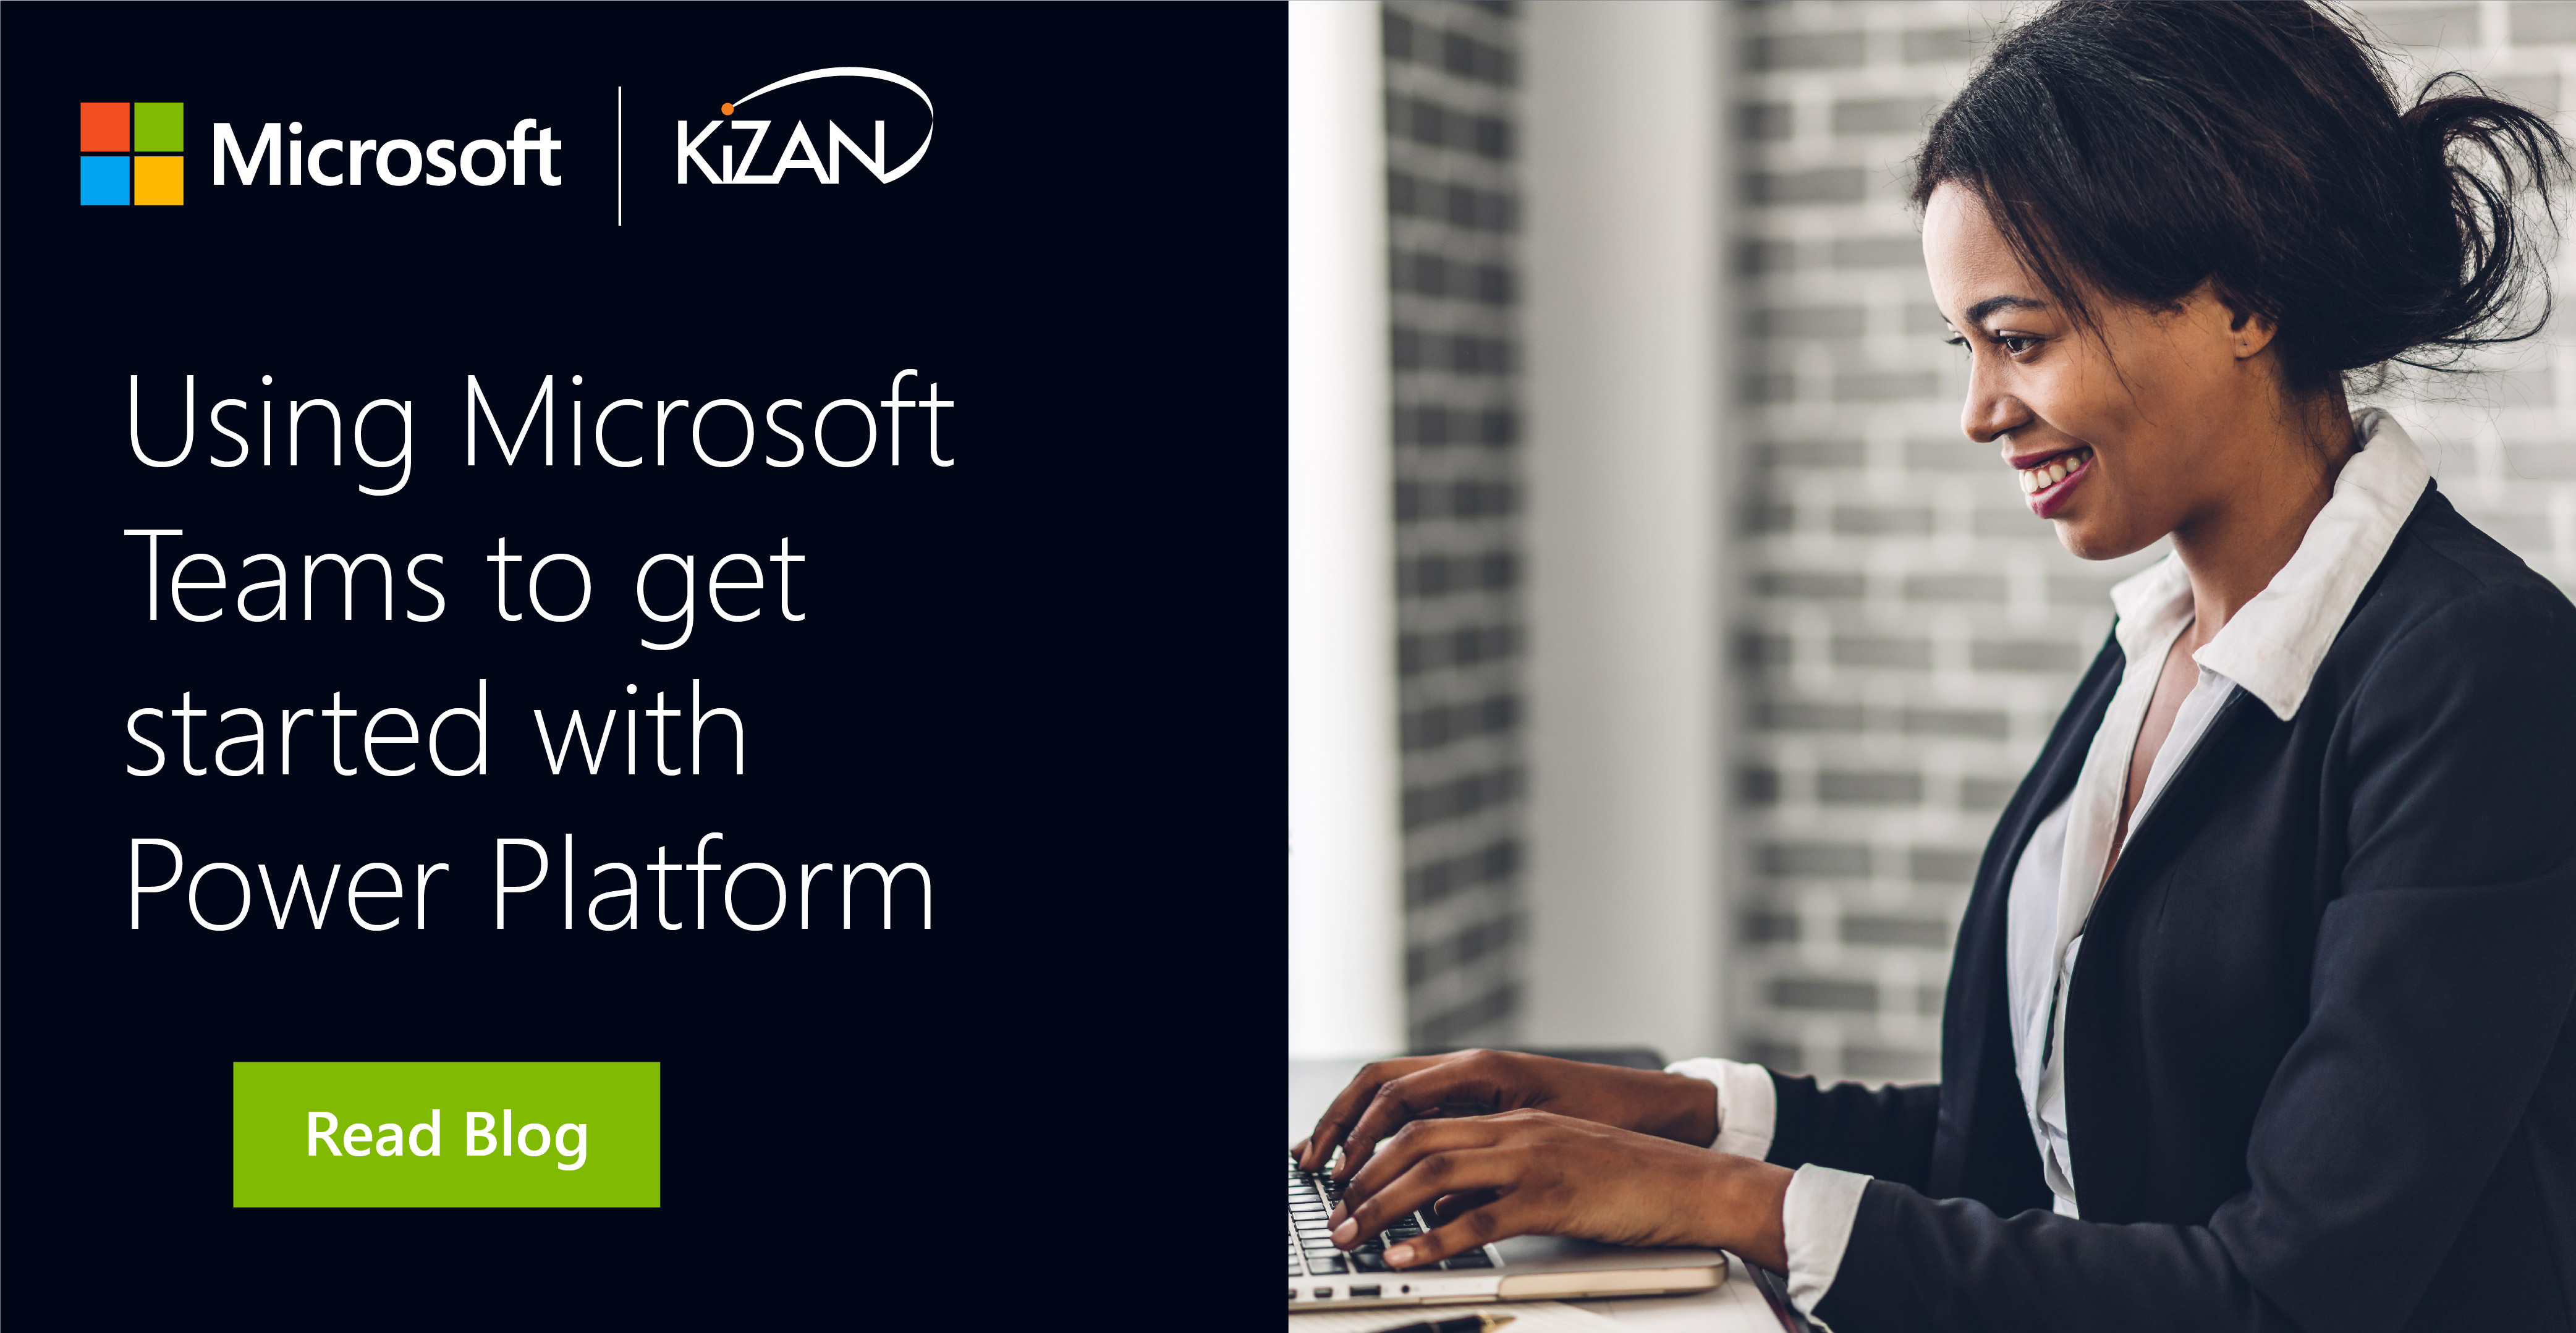 Using Microsoft Teams to get started with Power Platform